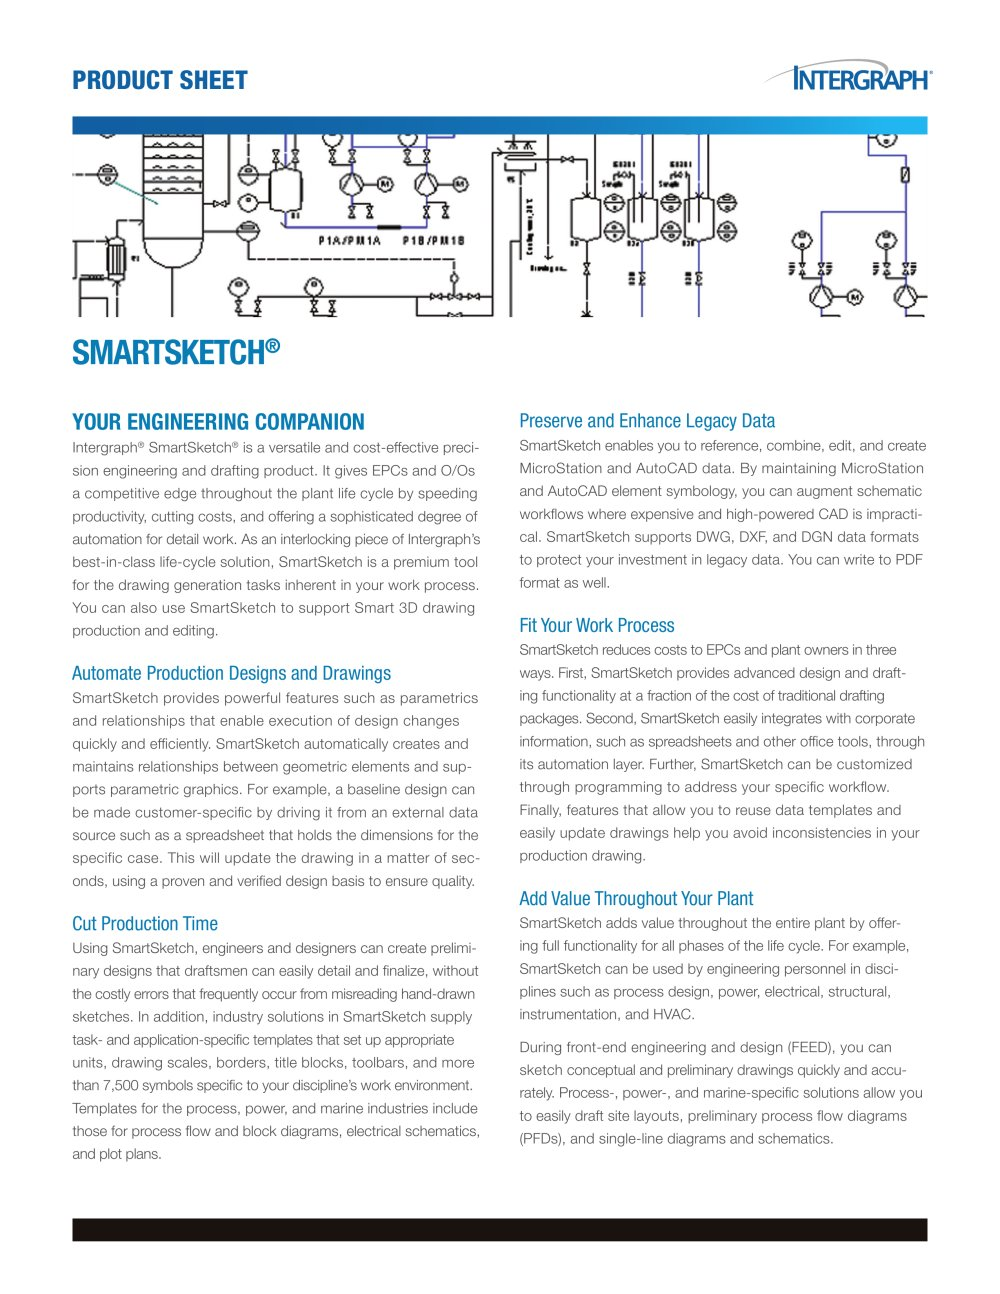 Smartsketch Product Sheet Intergraph Pdf Catalogues Hvac Drawing In Autocad 1 2 Pages